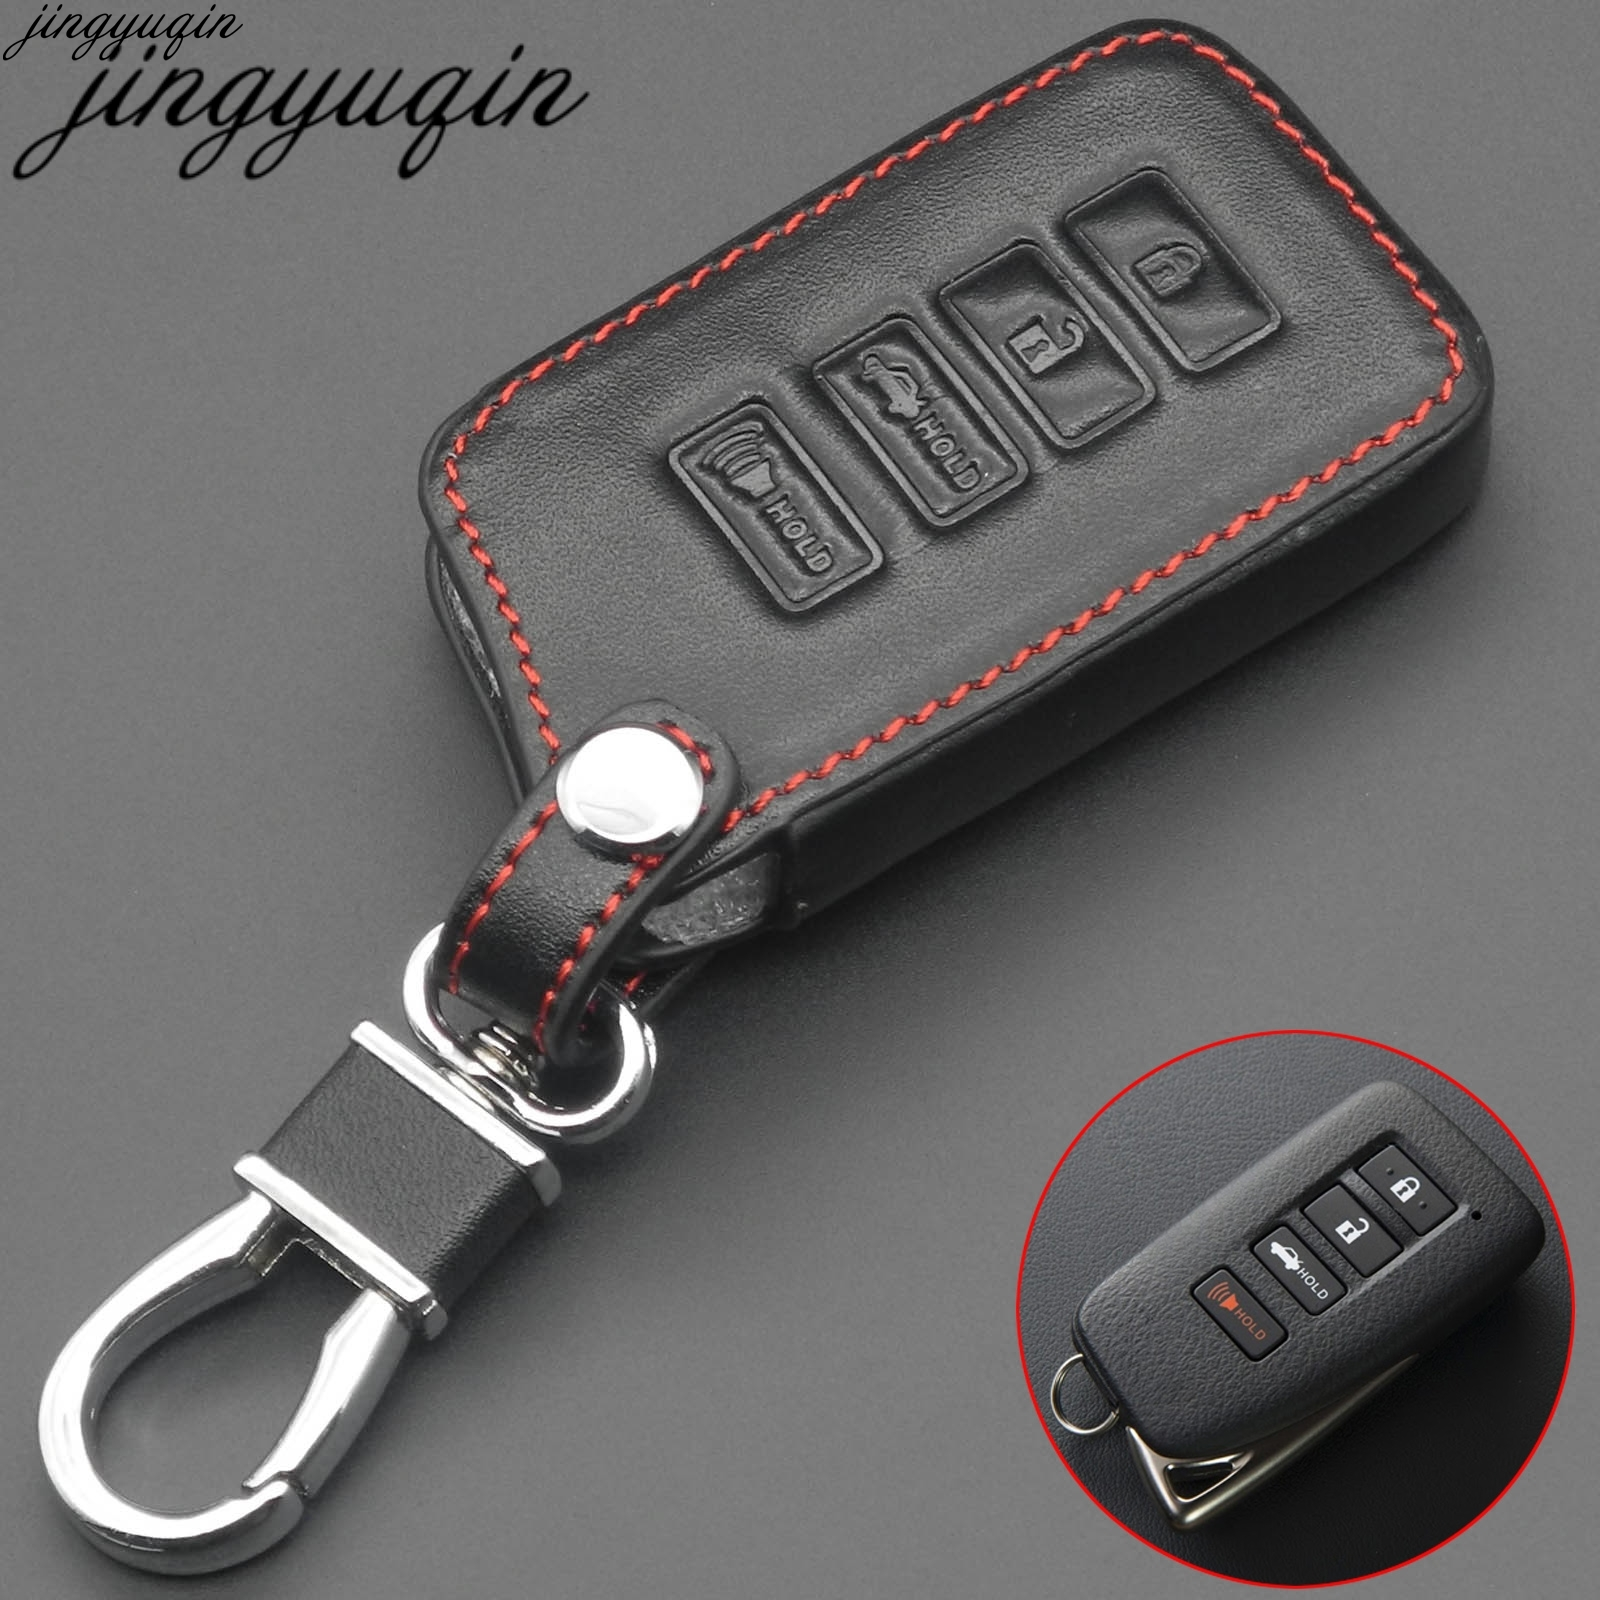 4 Button Key Fob <font><b>Cover</b></font> Case For <font><b>Lexus</b></font> ES350 NX200T <font><b>NX300h</b></font> LX570 <font><b>Car</b></font> Remote Holder Protector image